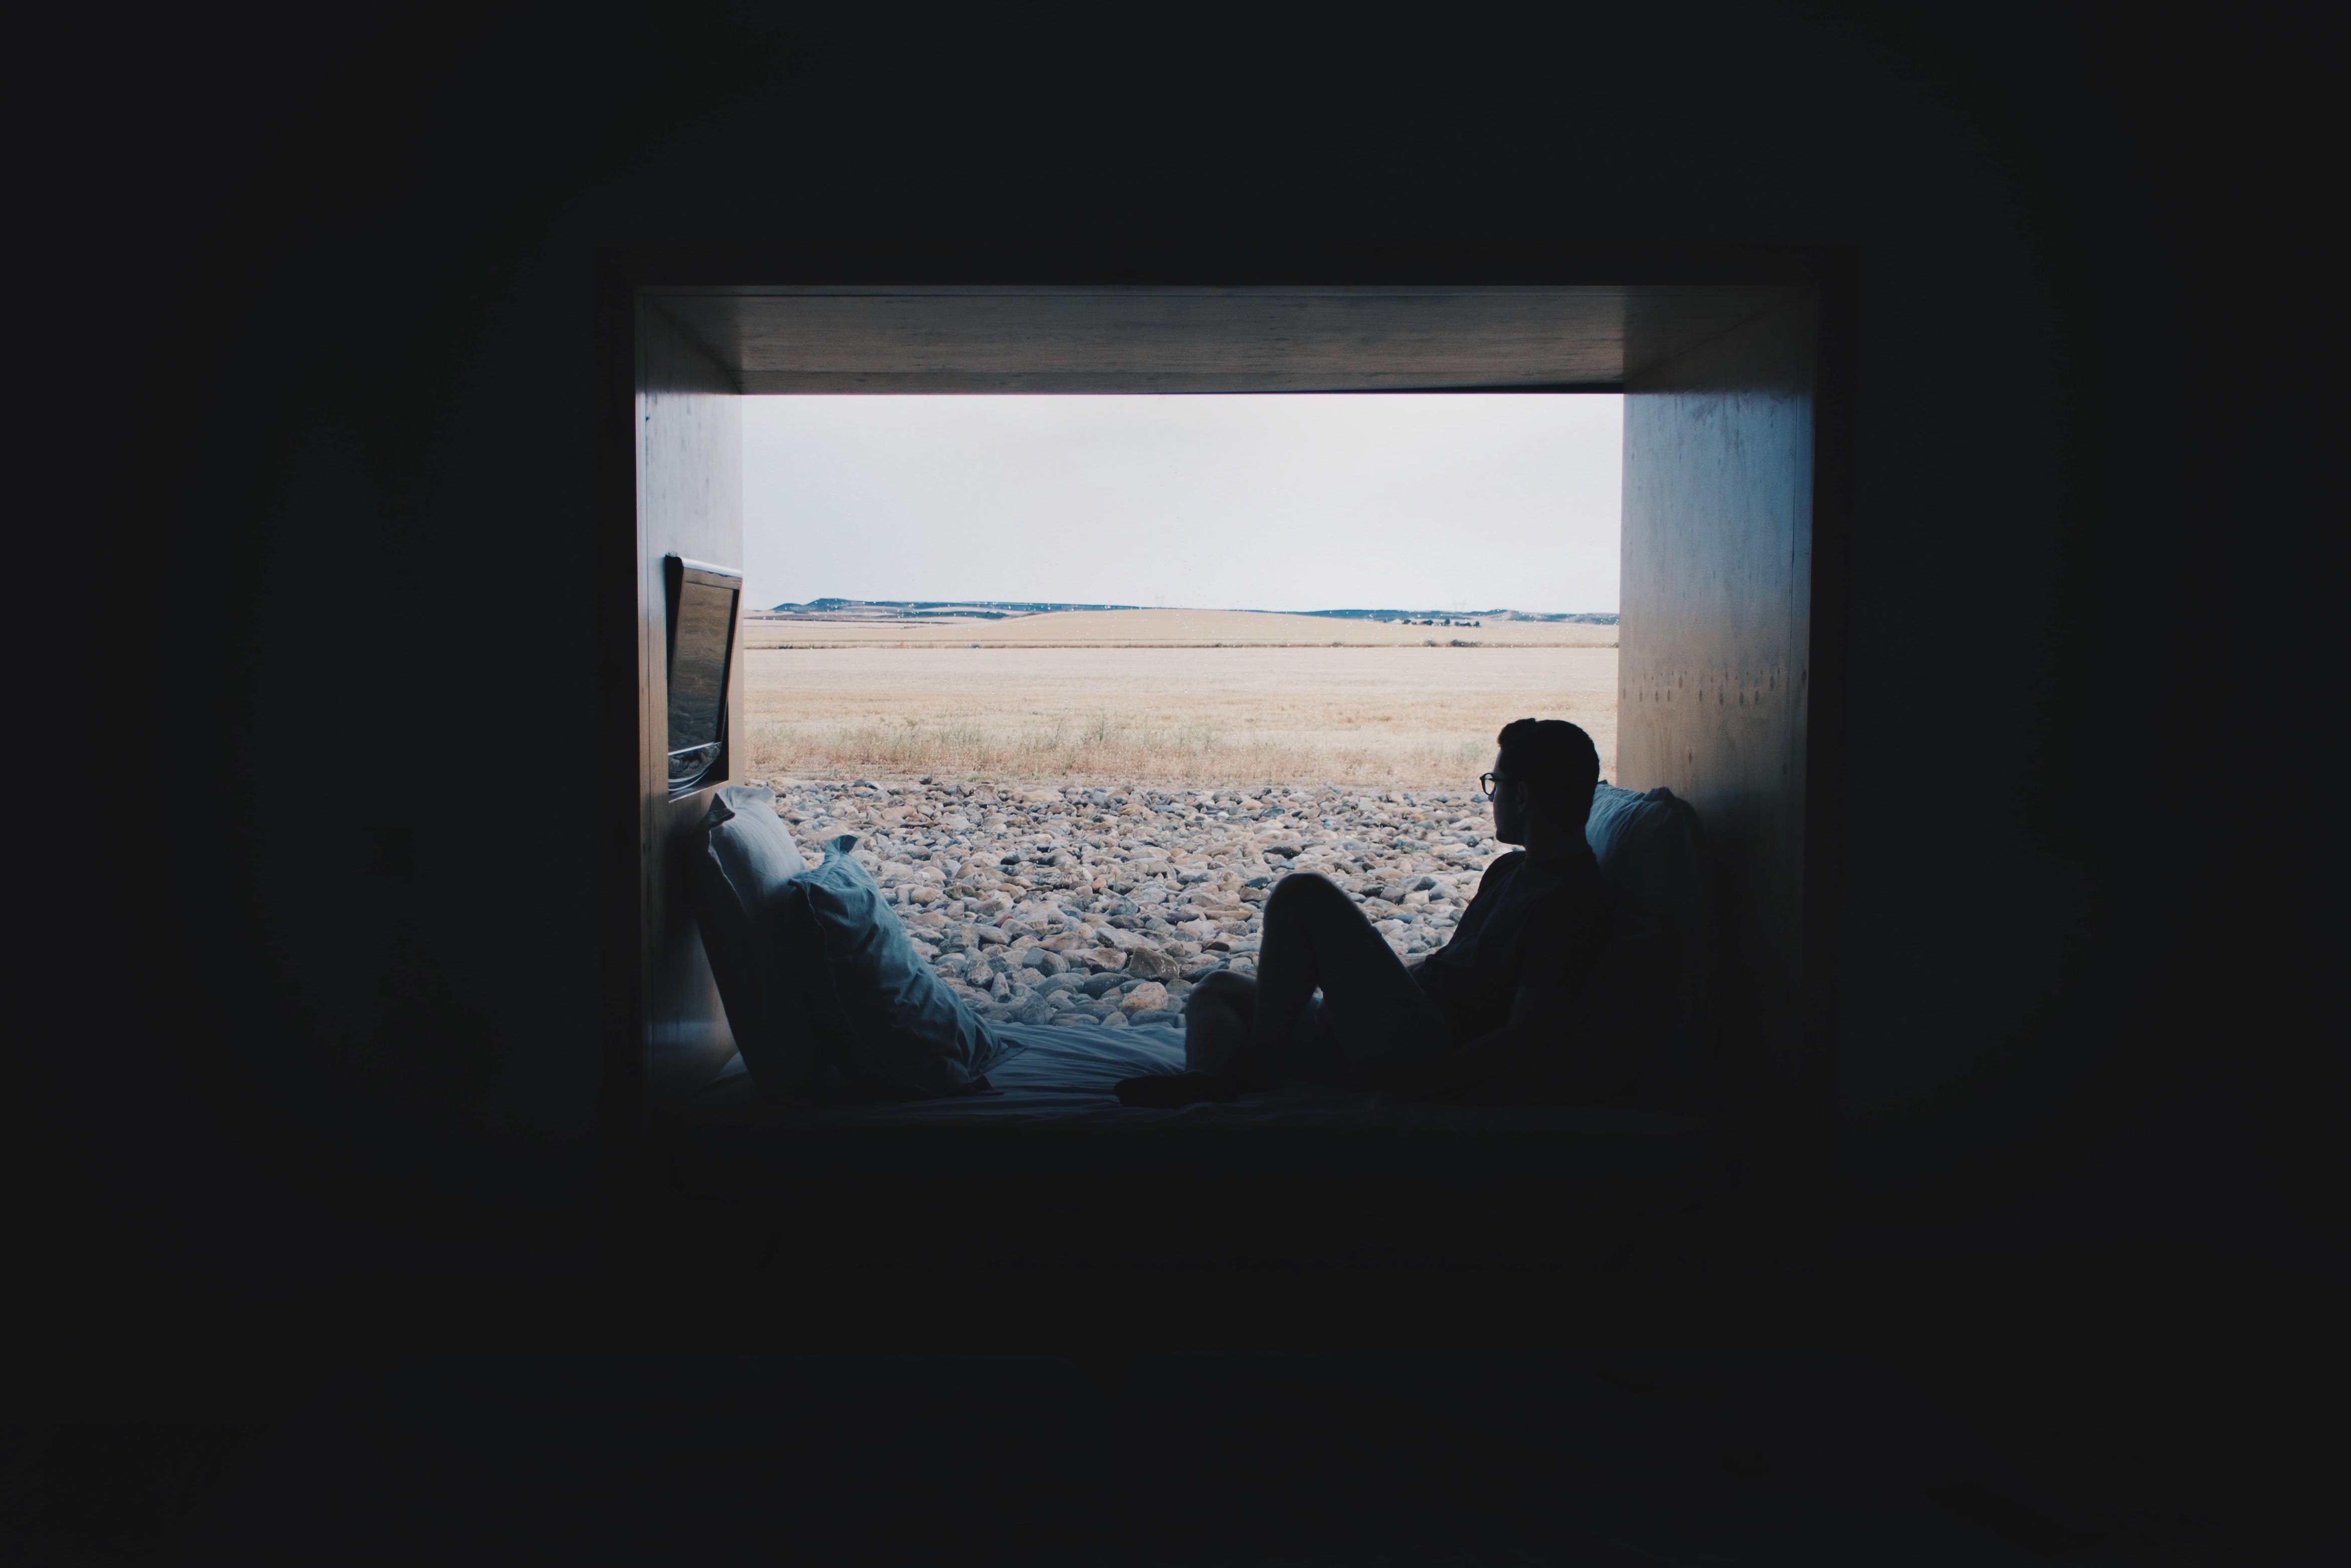 Man with glasses relaxing near window on sofa with rocky ground outside, Aire de Bardenas